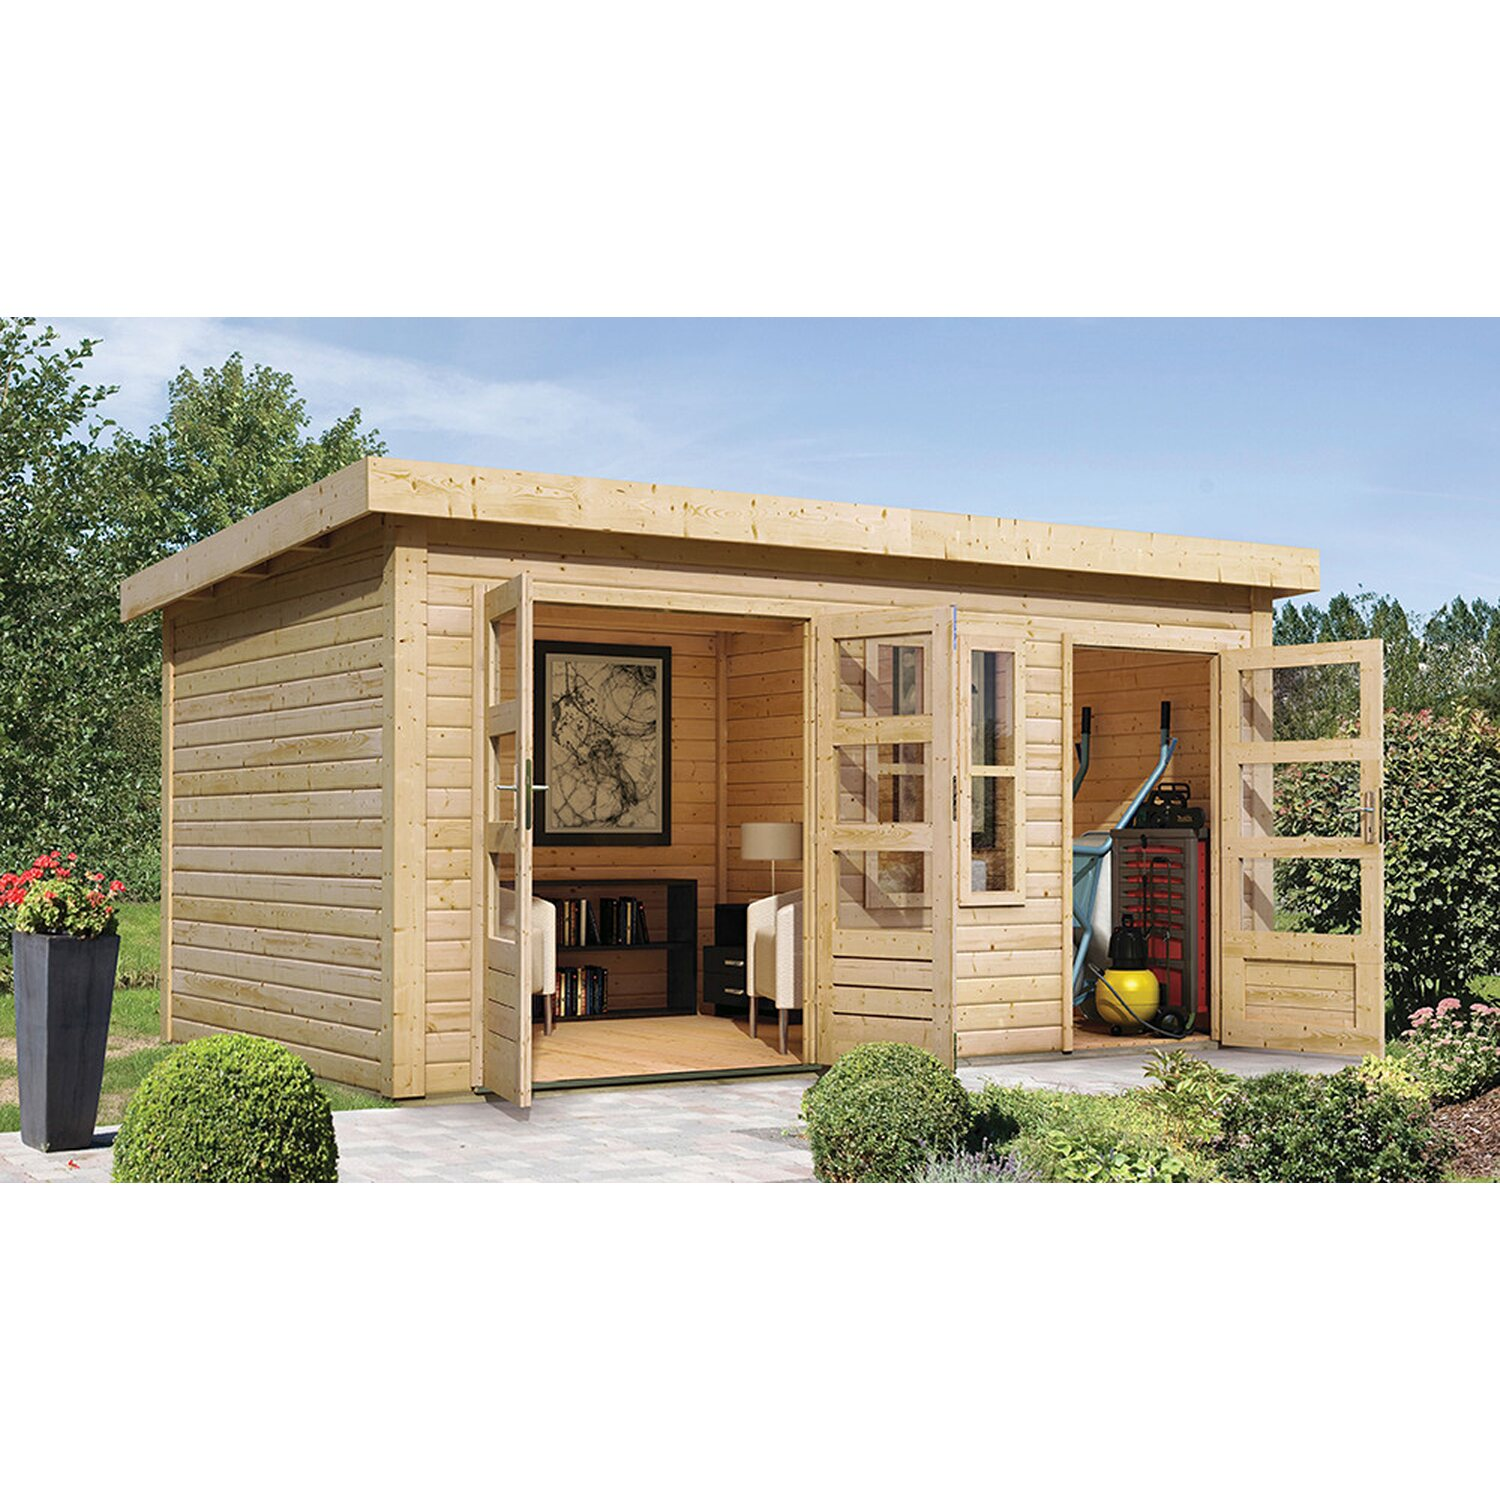 karibu holz gartenhaus v nersborg natur mit mittelwand b x t 422 cm x 272 cm kaufen bei obi. Black Bedroom Furniture Sets. Home Design Ideas